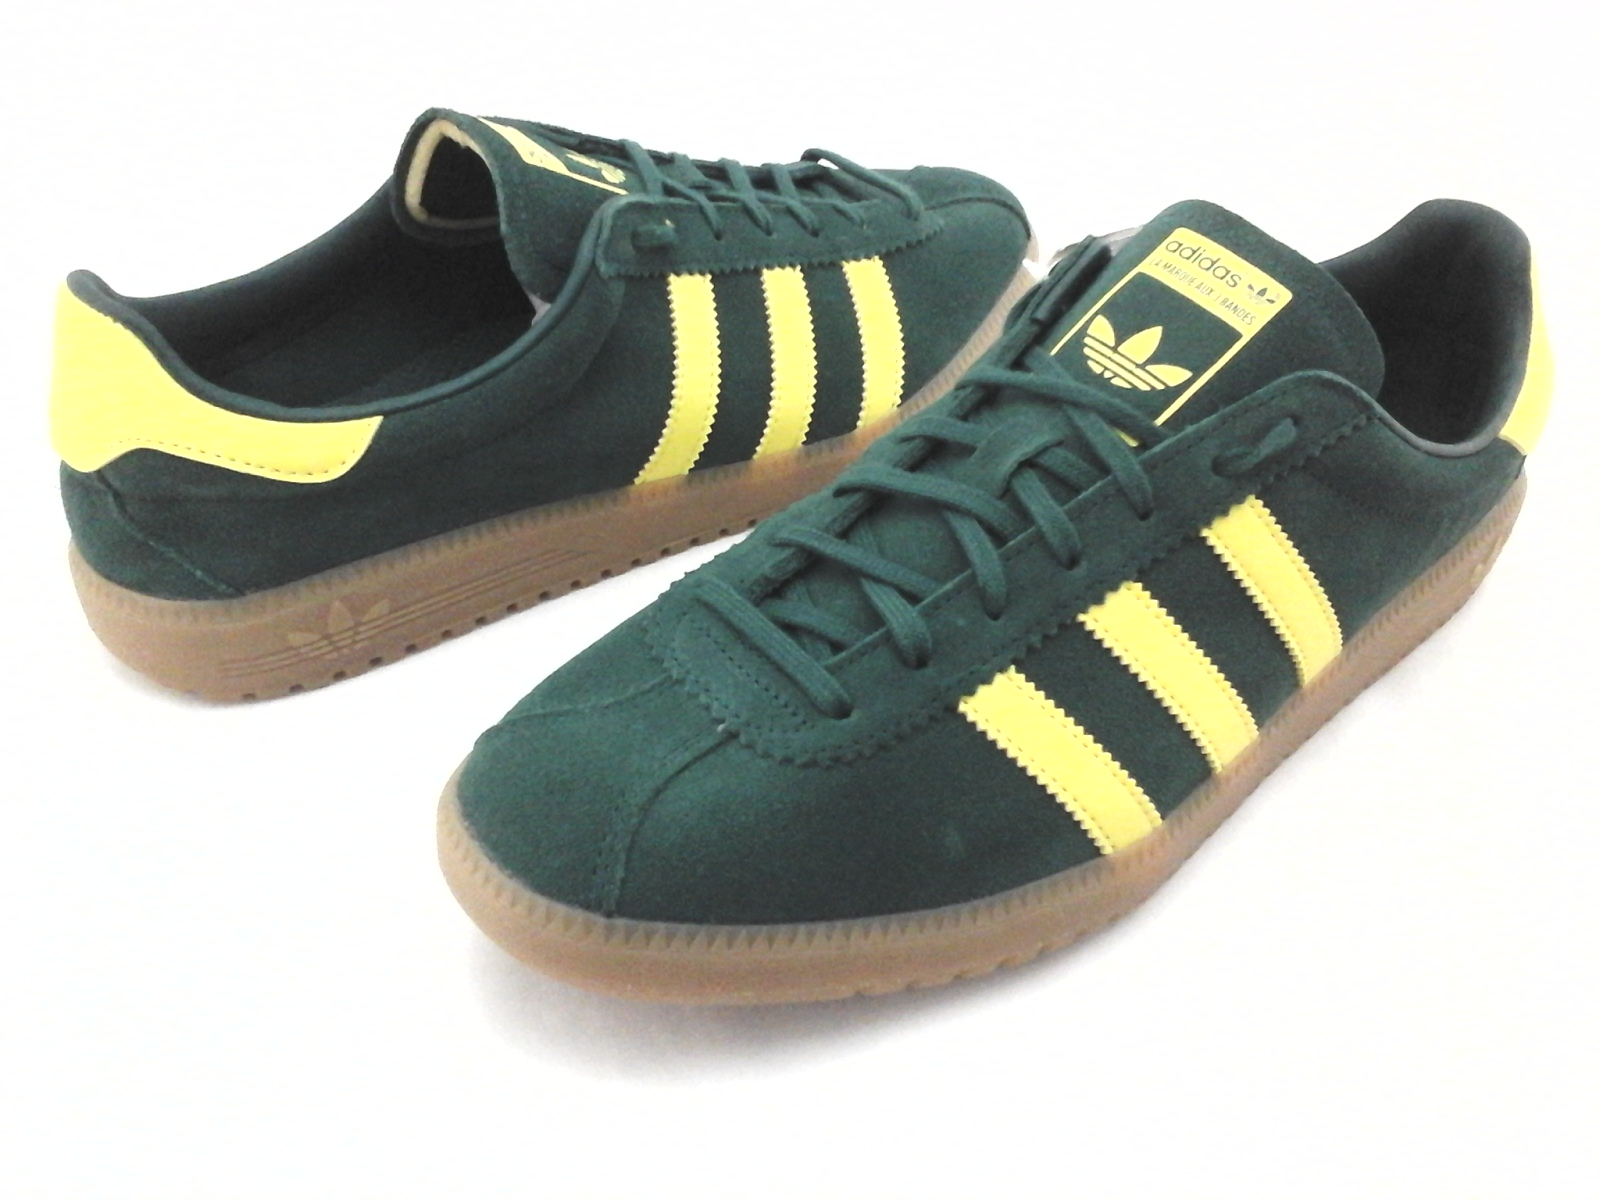 16a0d56553 Adidas BERMUDA Shoes Green Suede Yellow Gum Sole Retro B41472 Men's ...